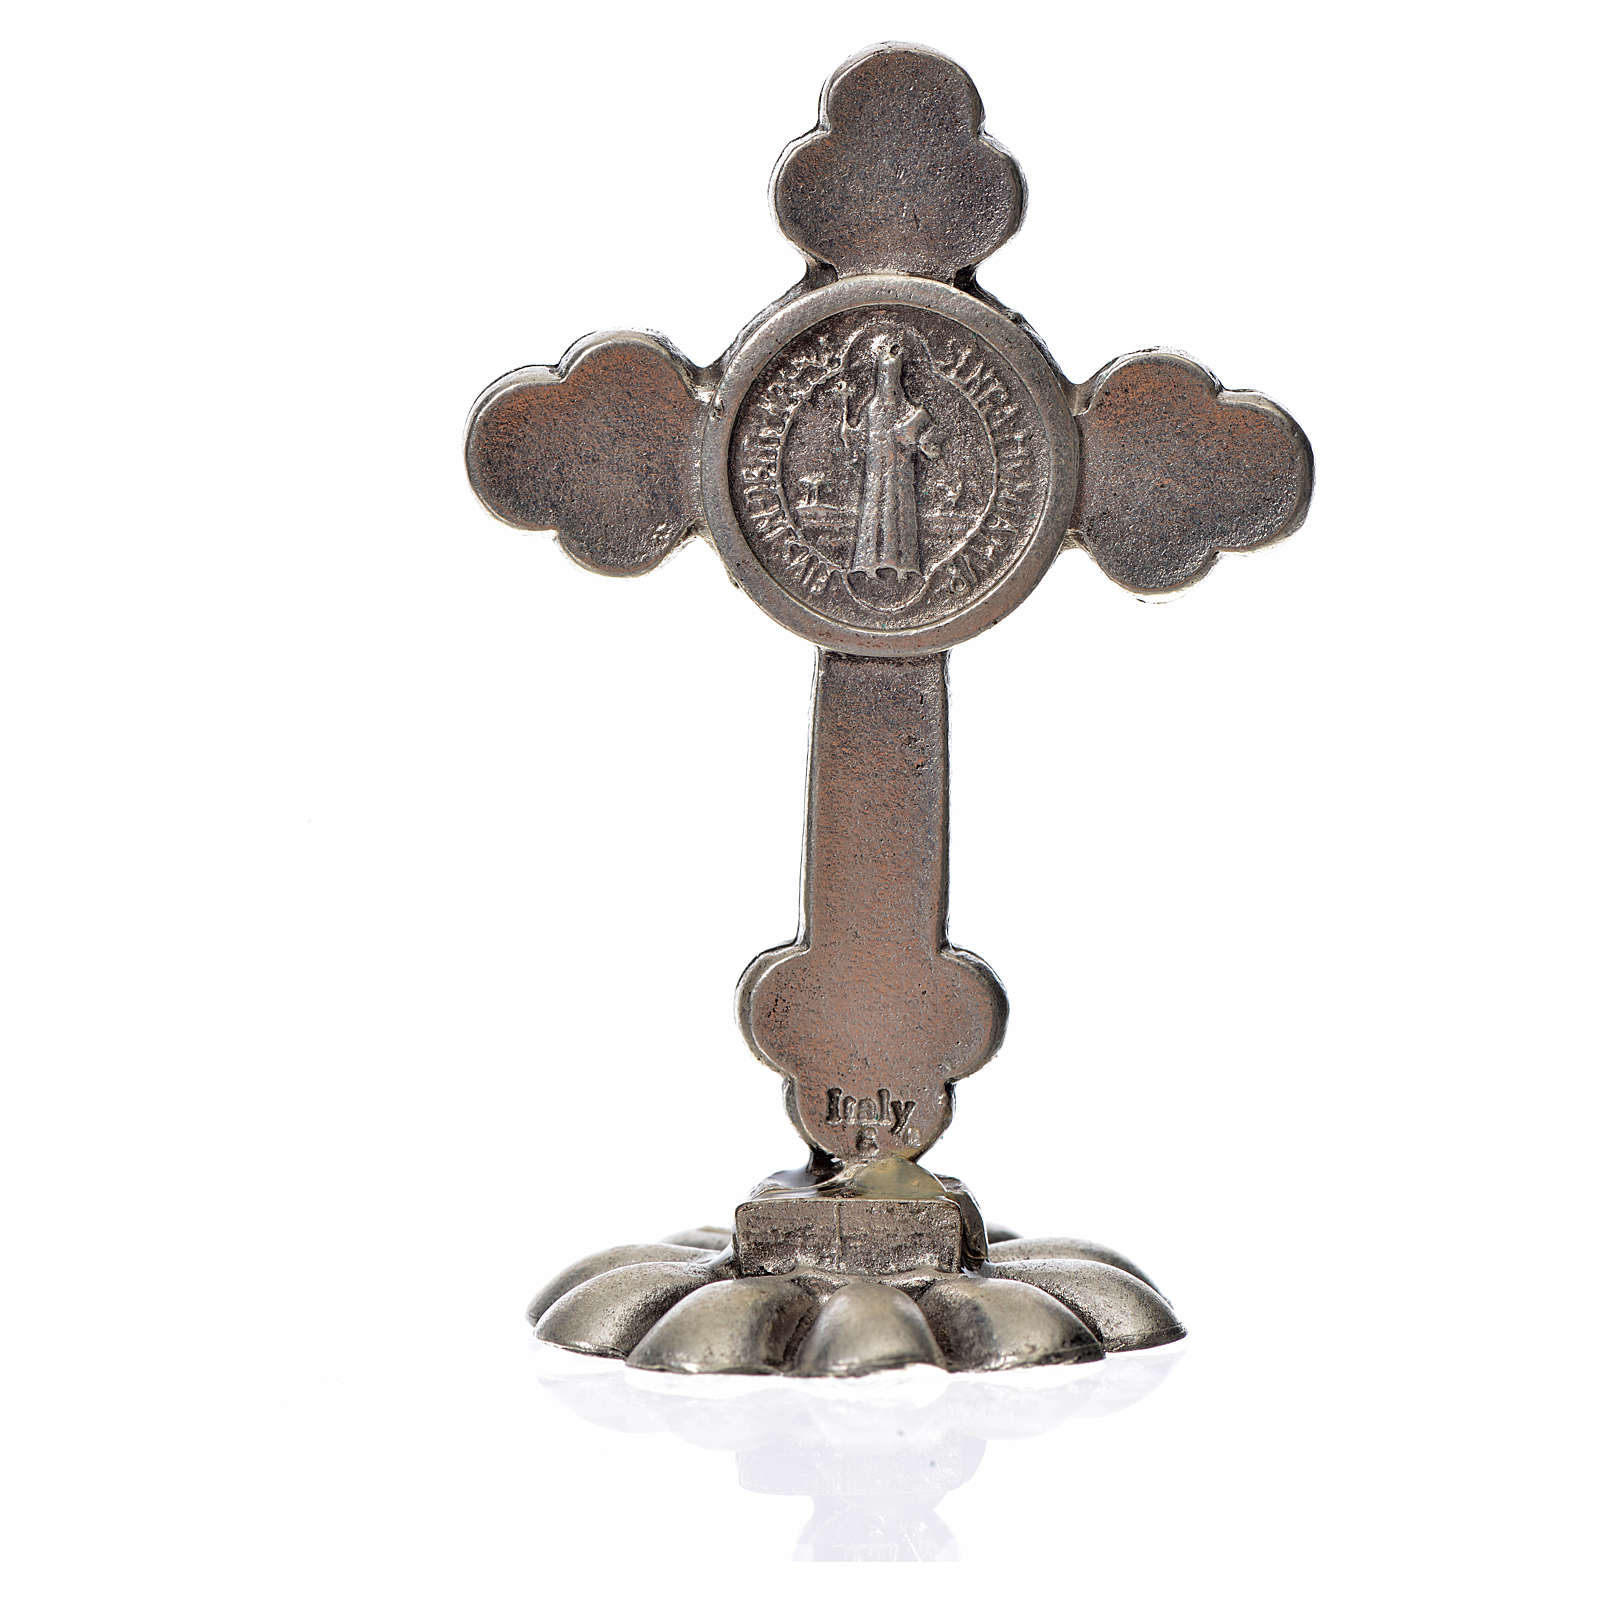 St. Benedict table trefoil cross 5x3.5cm, made of zamak and whit 4